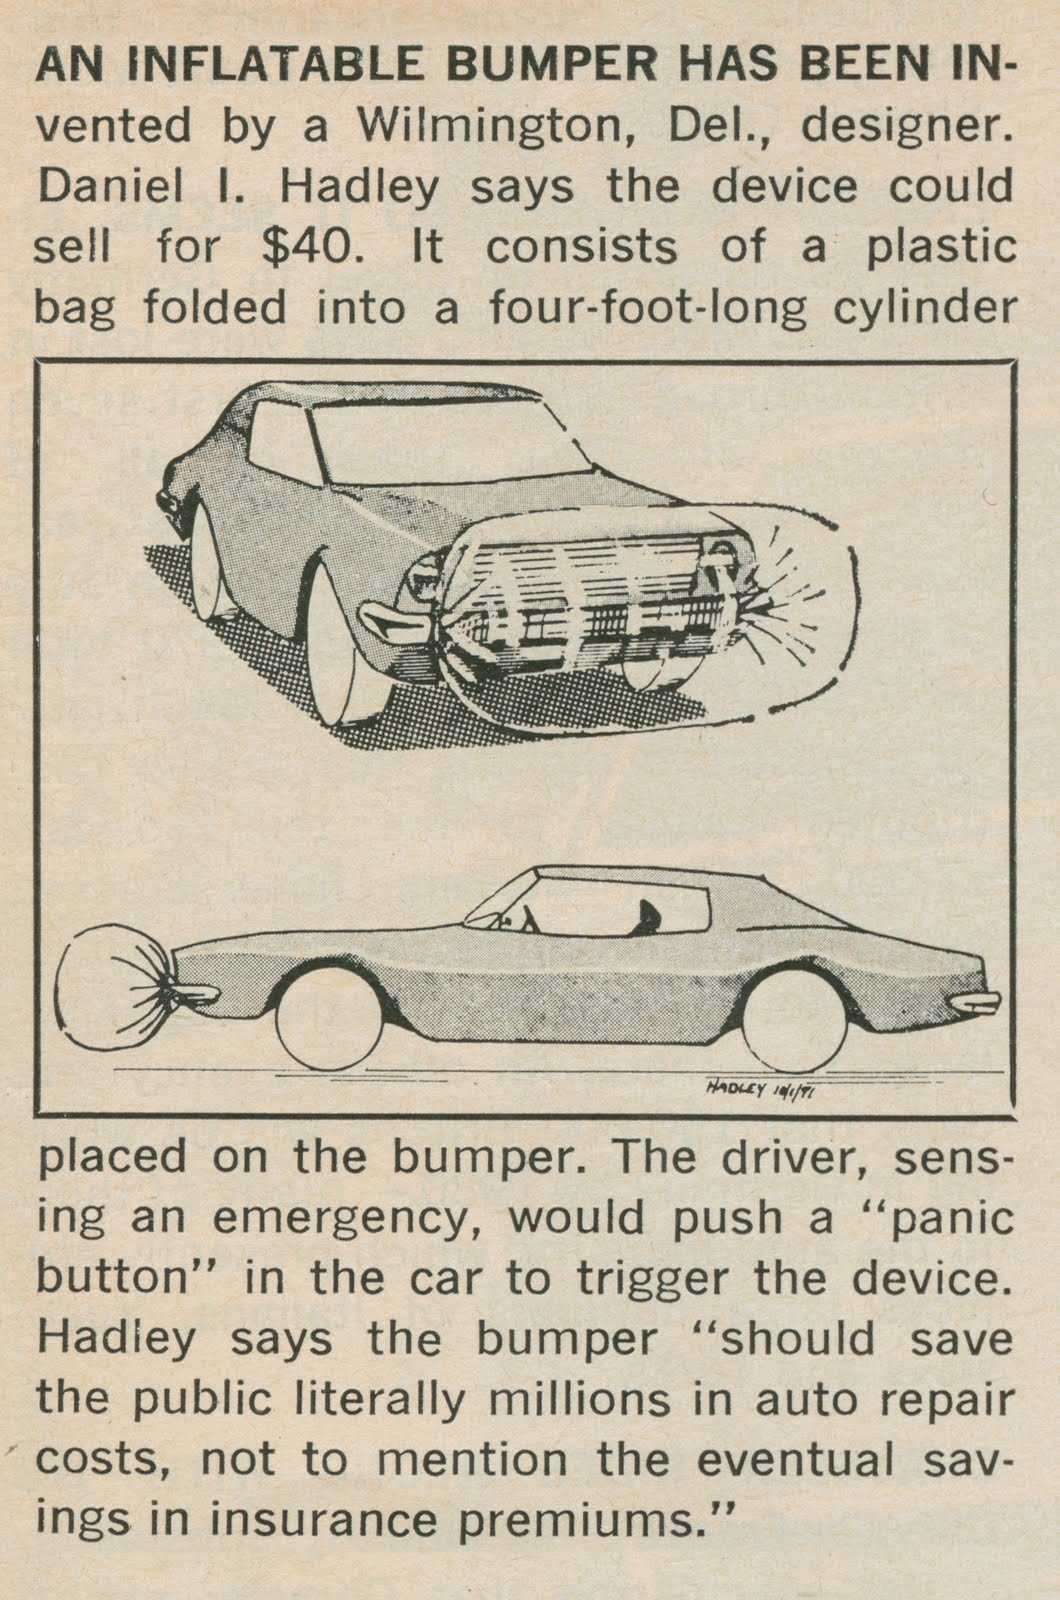 The Likelihood Of A Plastic Bag Stopping Four Thousand Pound Car Is Wildly Optimistic You D Think That Cars Were Much Heavier In 1972 But Oddly Enough